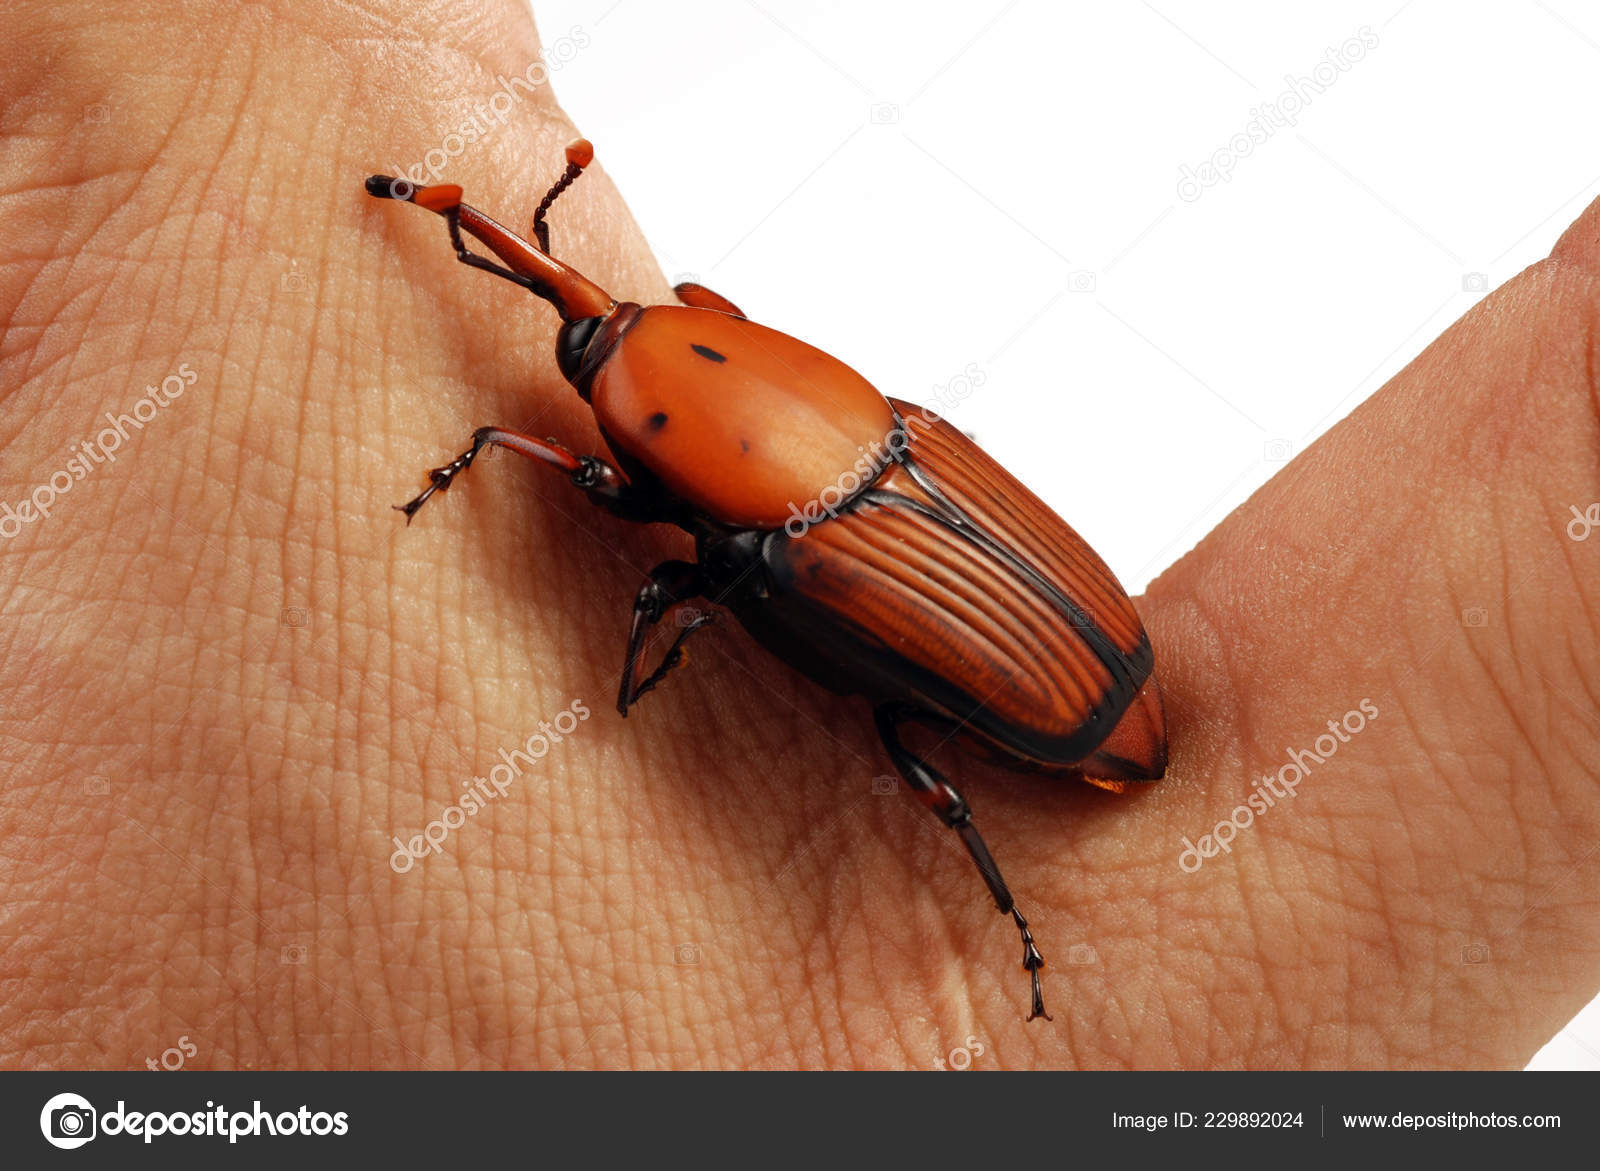 Red Weevil Insect Killer — Stock Photo © lauro55 #229892024